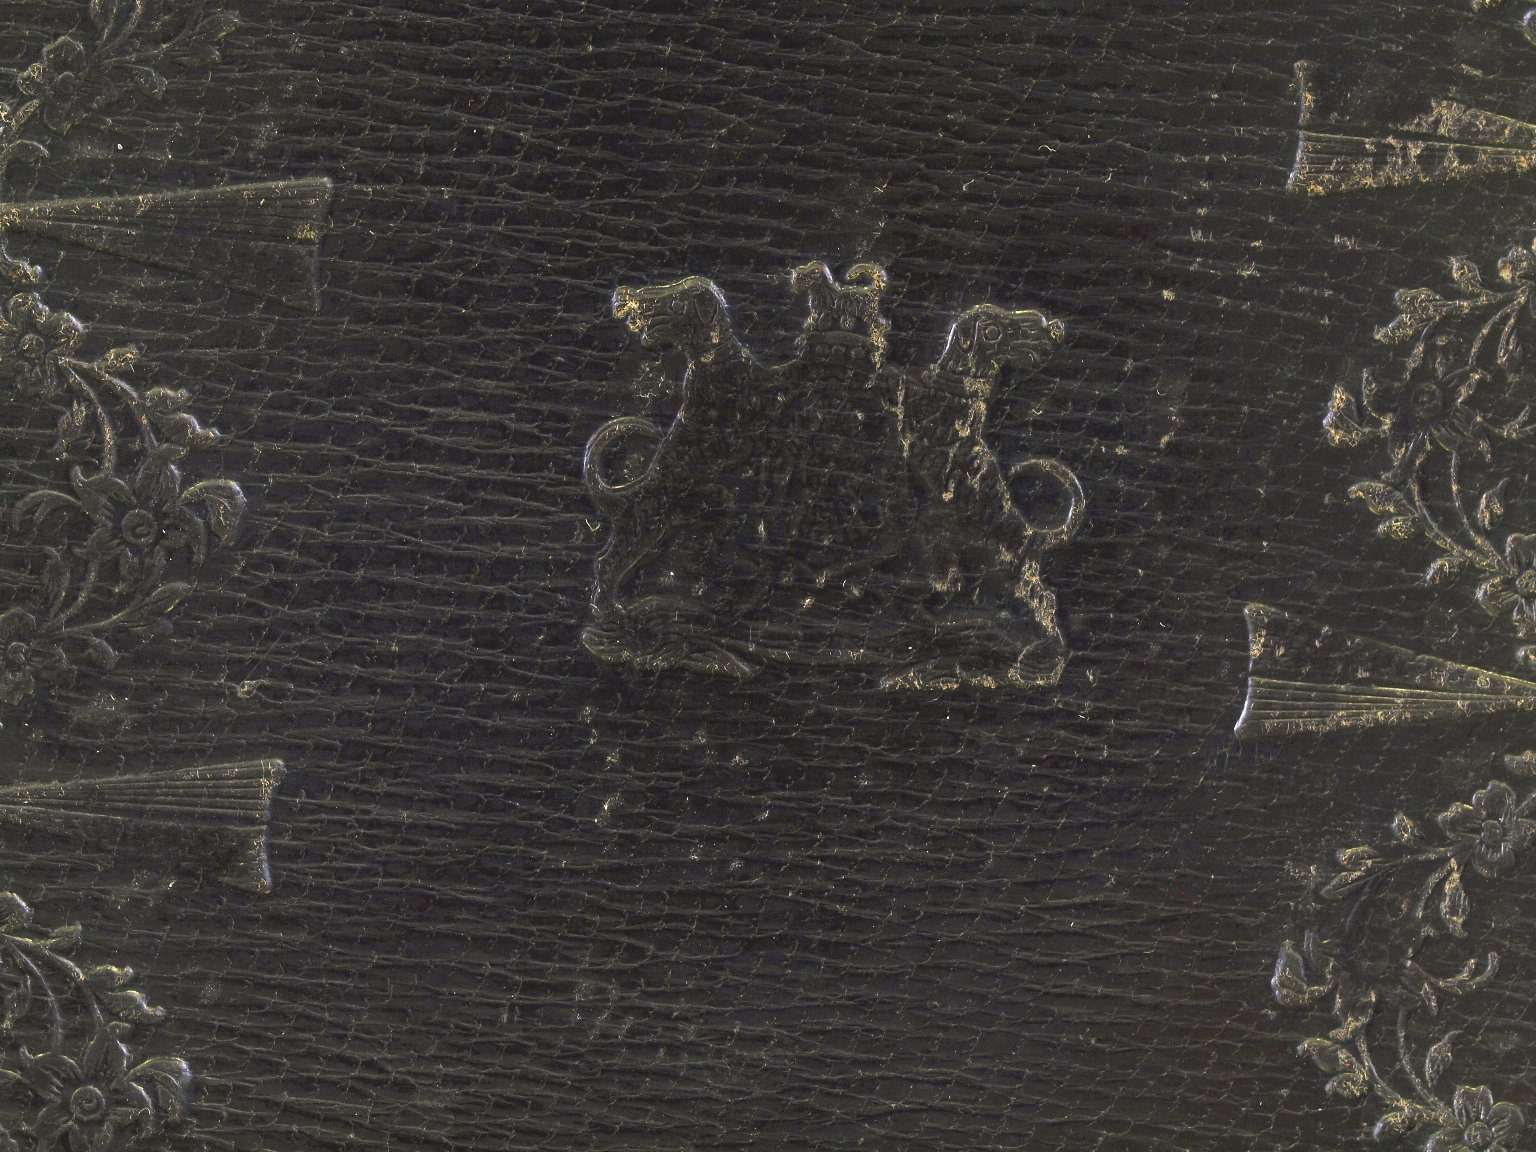 Front cover tooling detail, 182845.